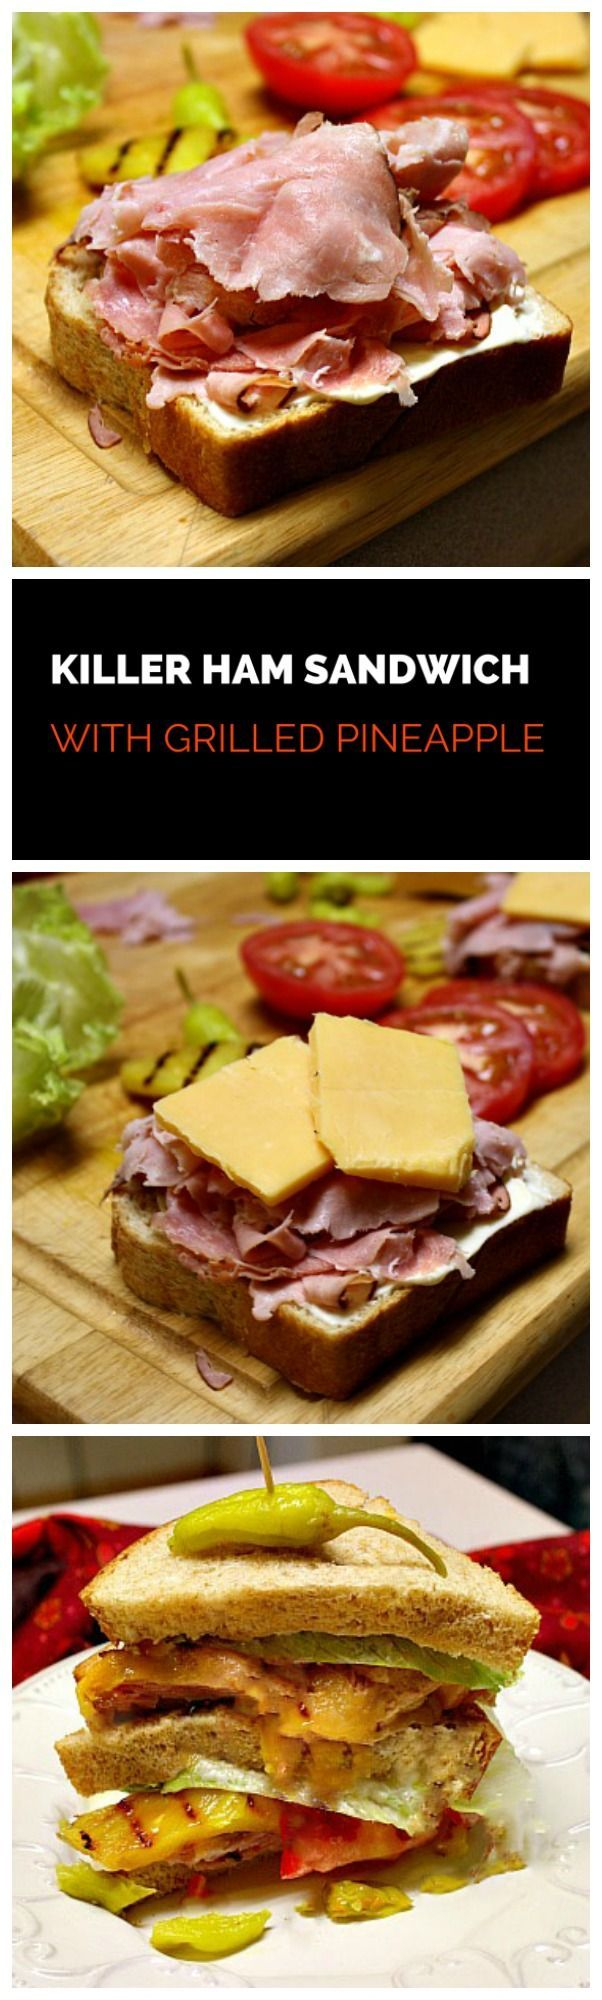 Great sandwich for left over Easter Ham. This combo comes in 2nd as the best sandwich I've ever had. BLT being first, of course. Stacked high with ham, cheese, grilled pineapple, tomato and pepperoncini, this is a killer sandwich.